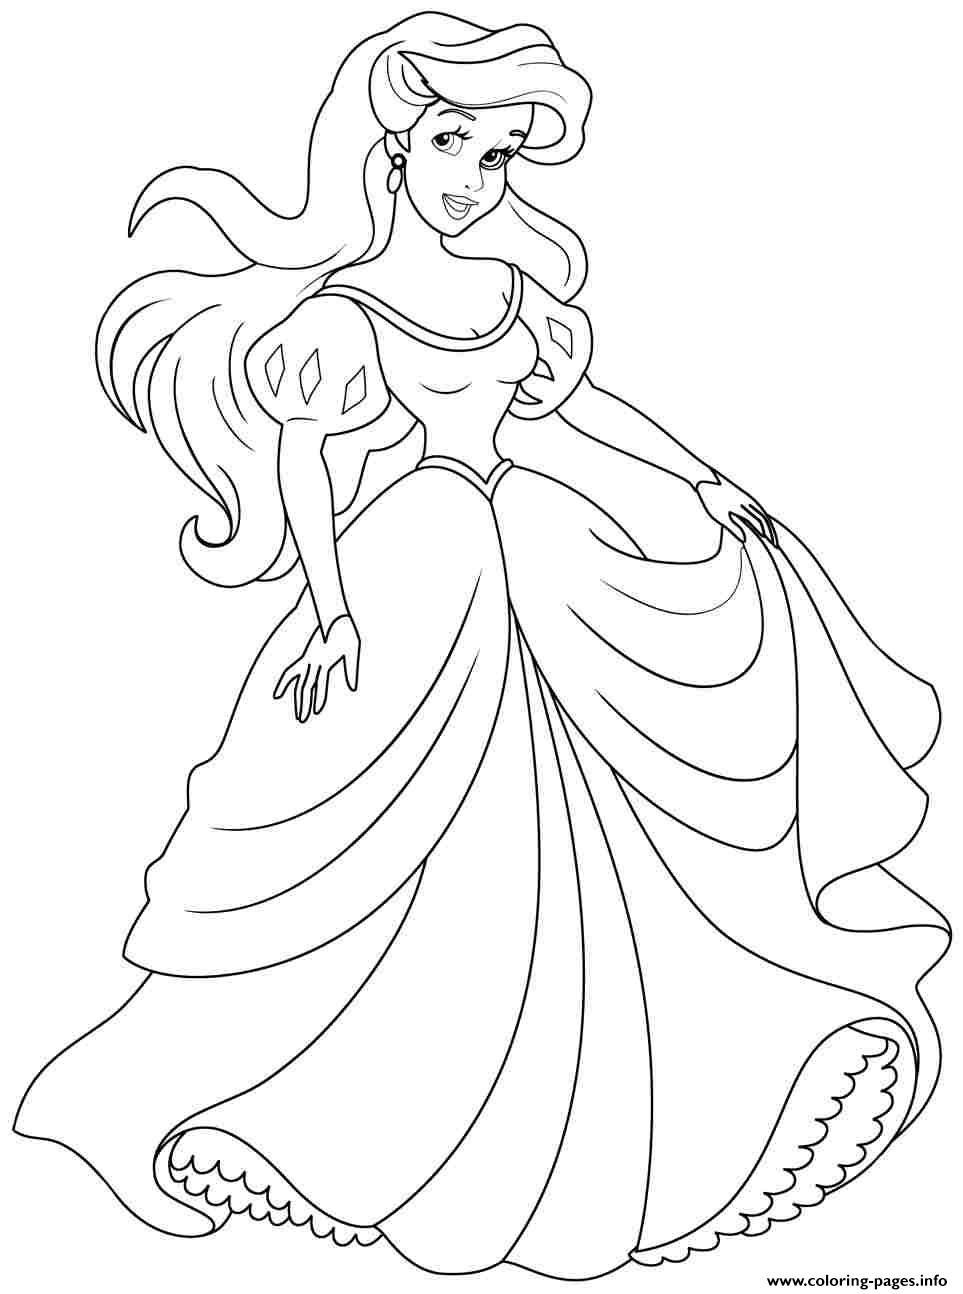 Print Princess Ariel Human Coloring Pages Disney Princess